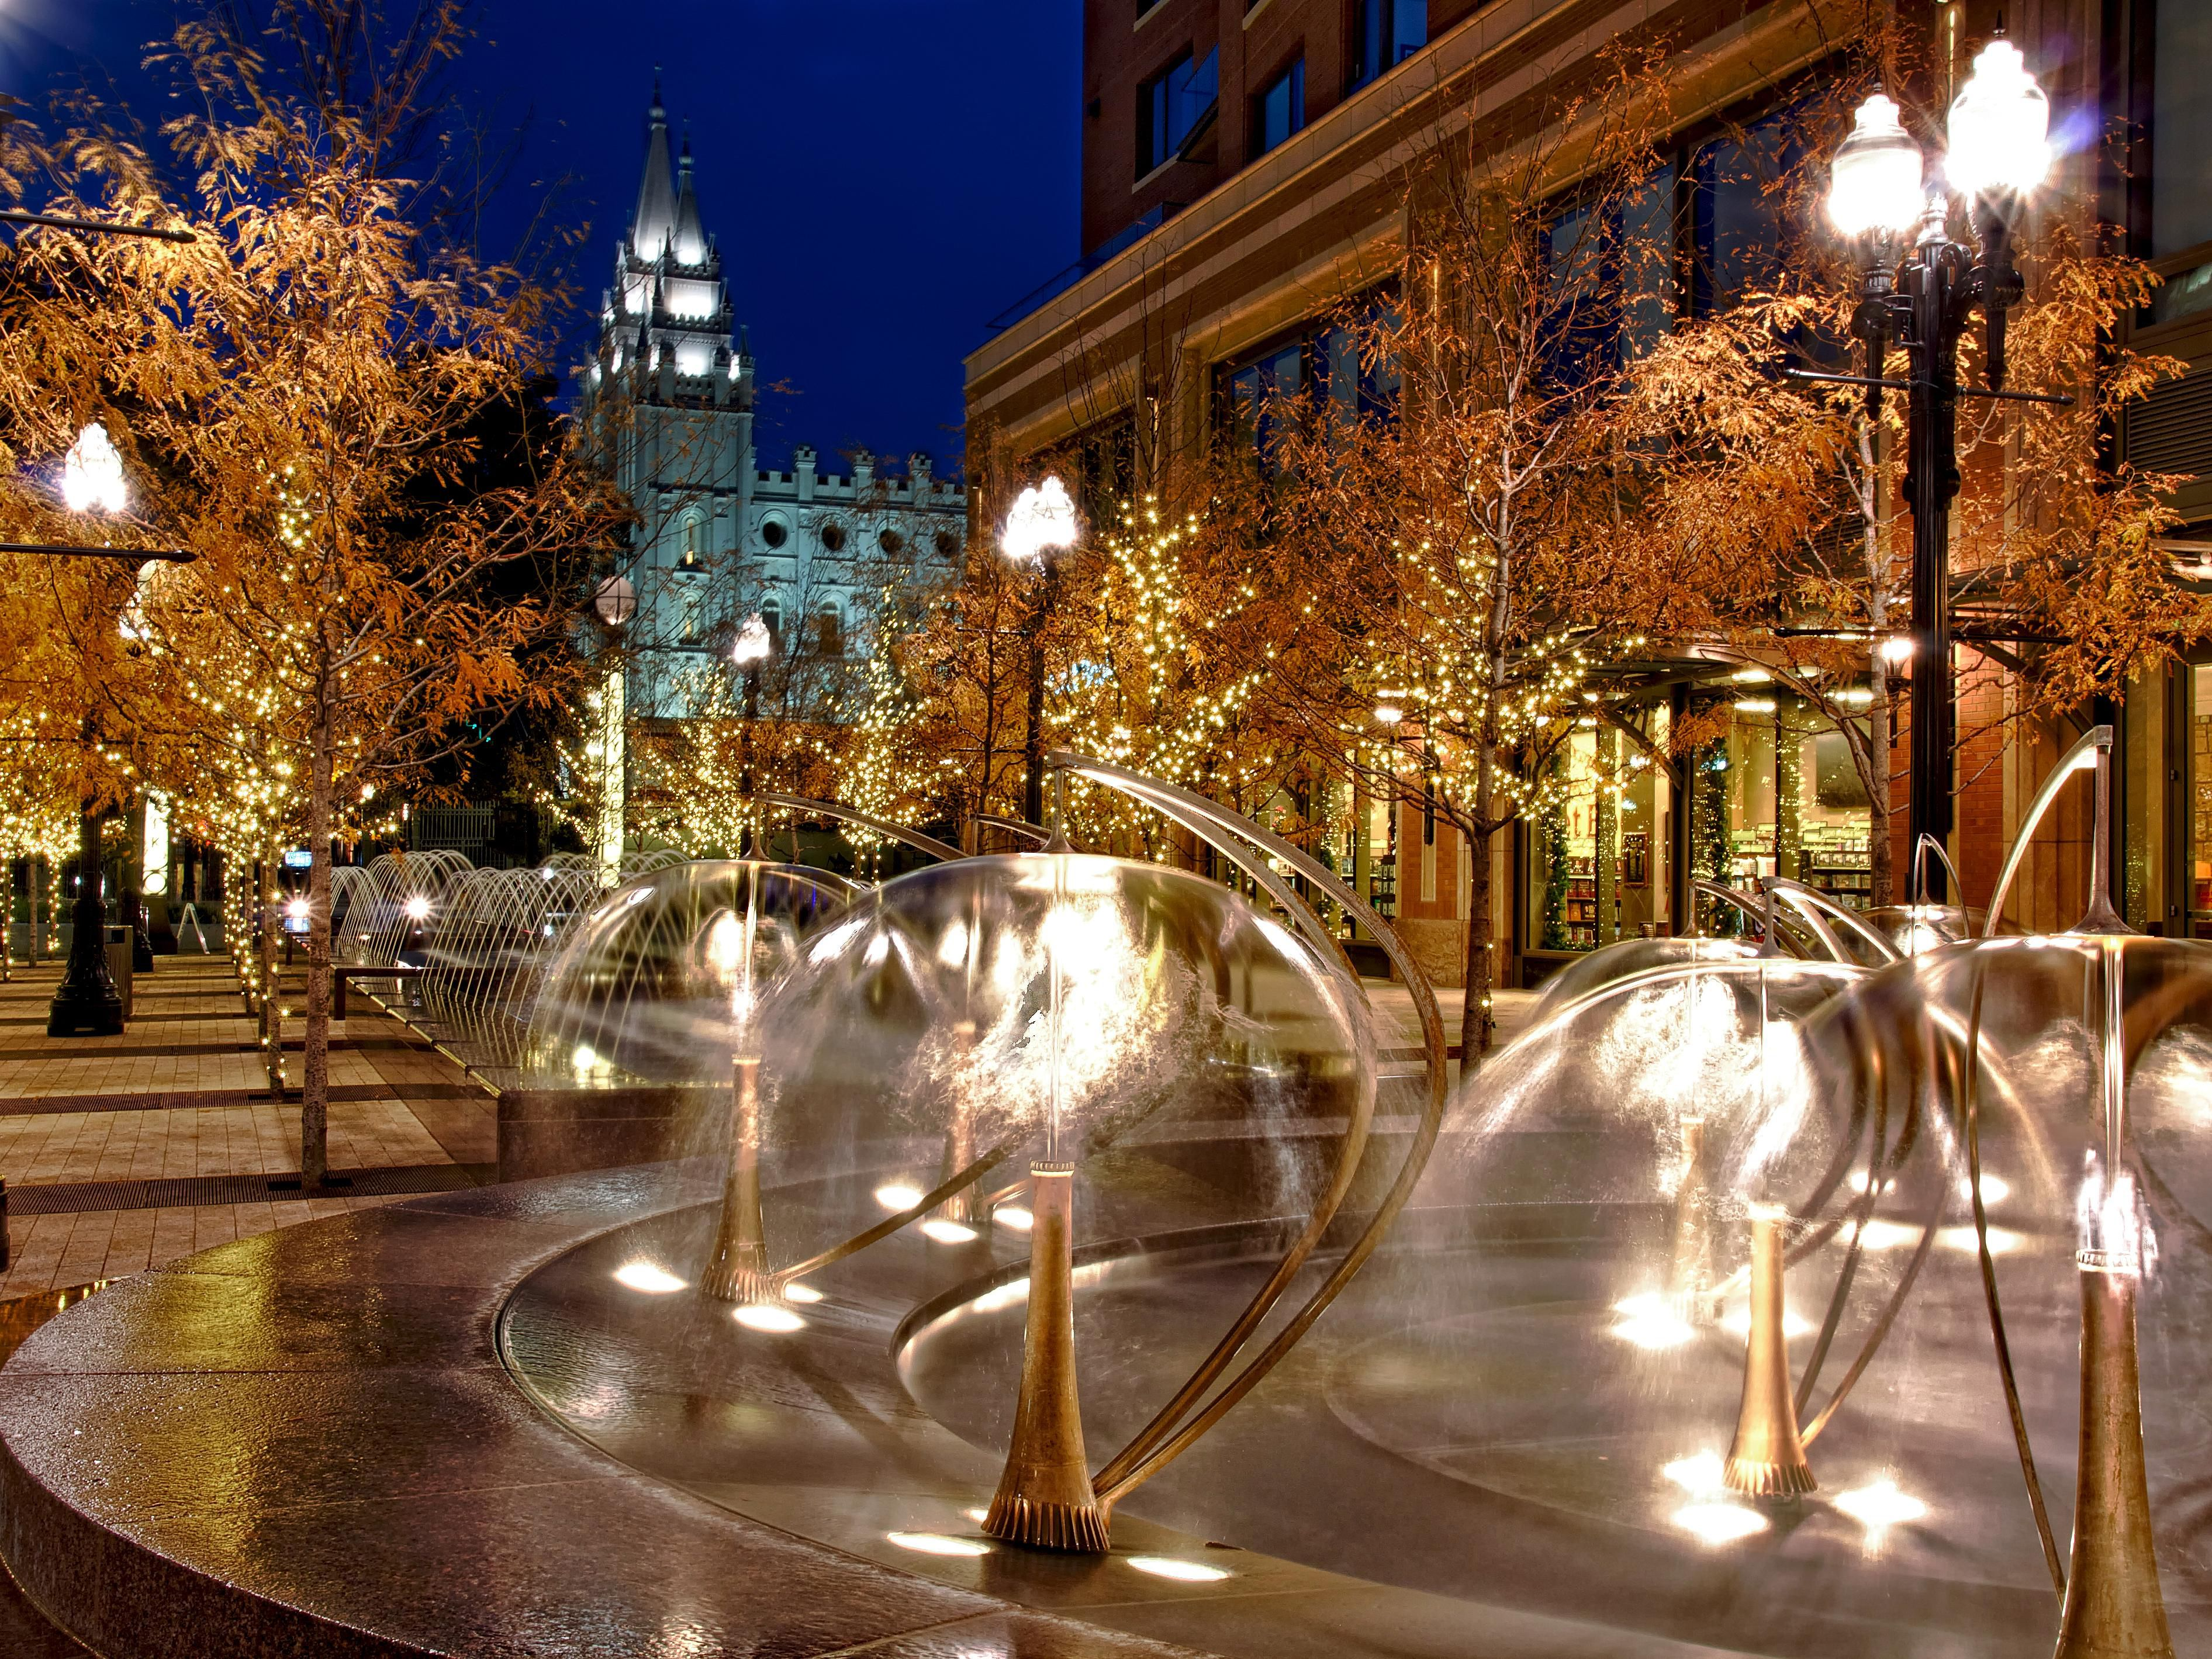 City Creek fountains and shopping center is within two blocks